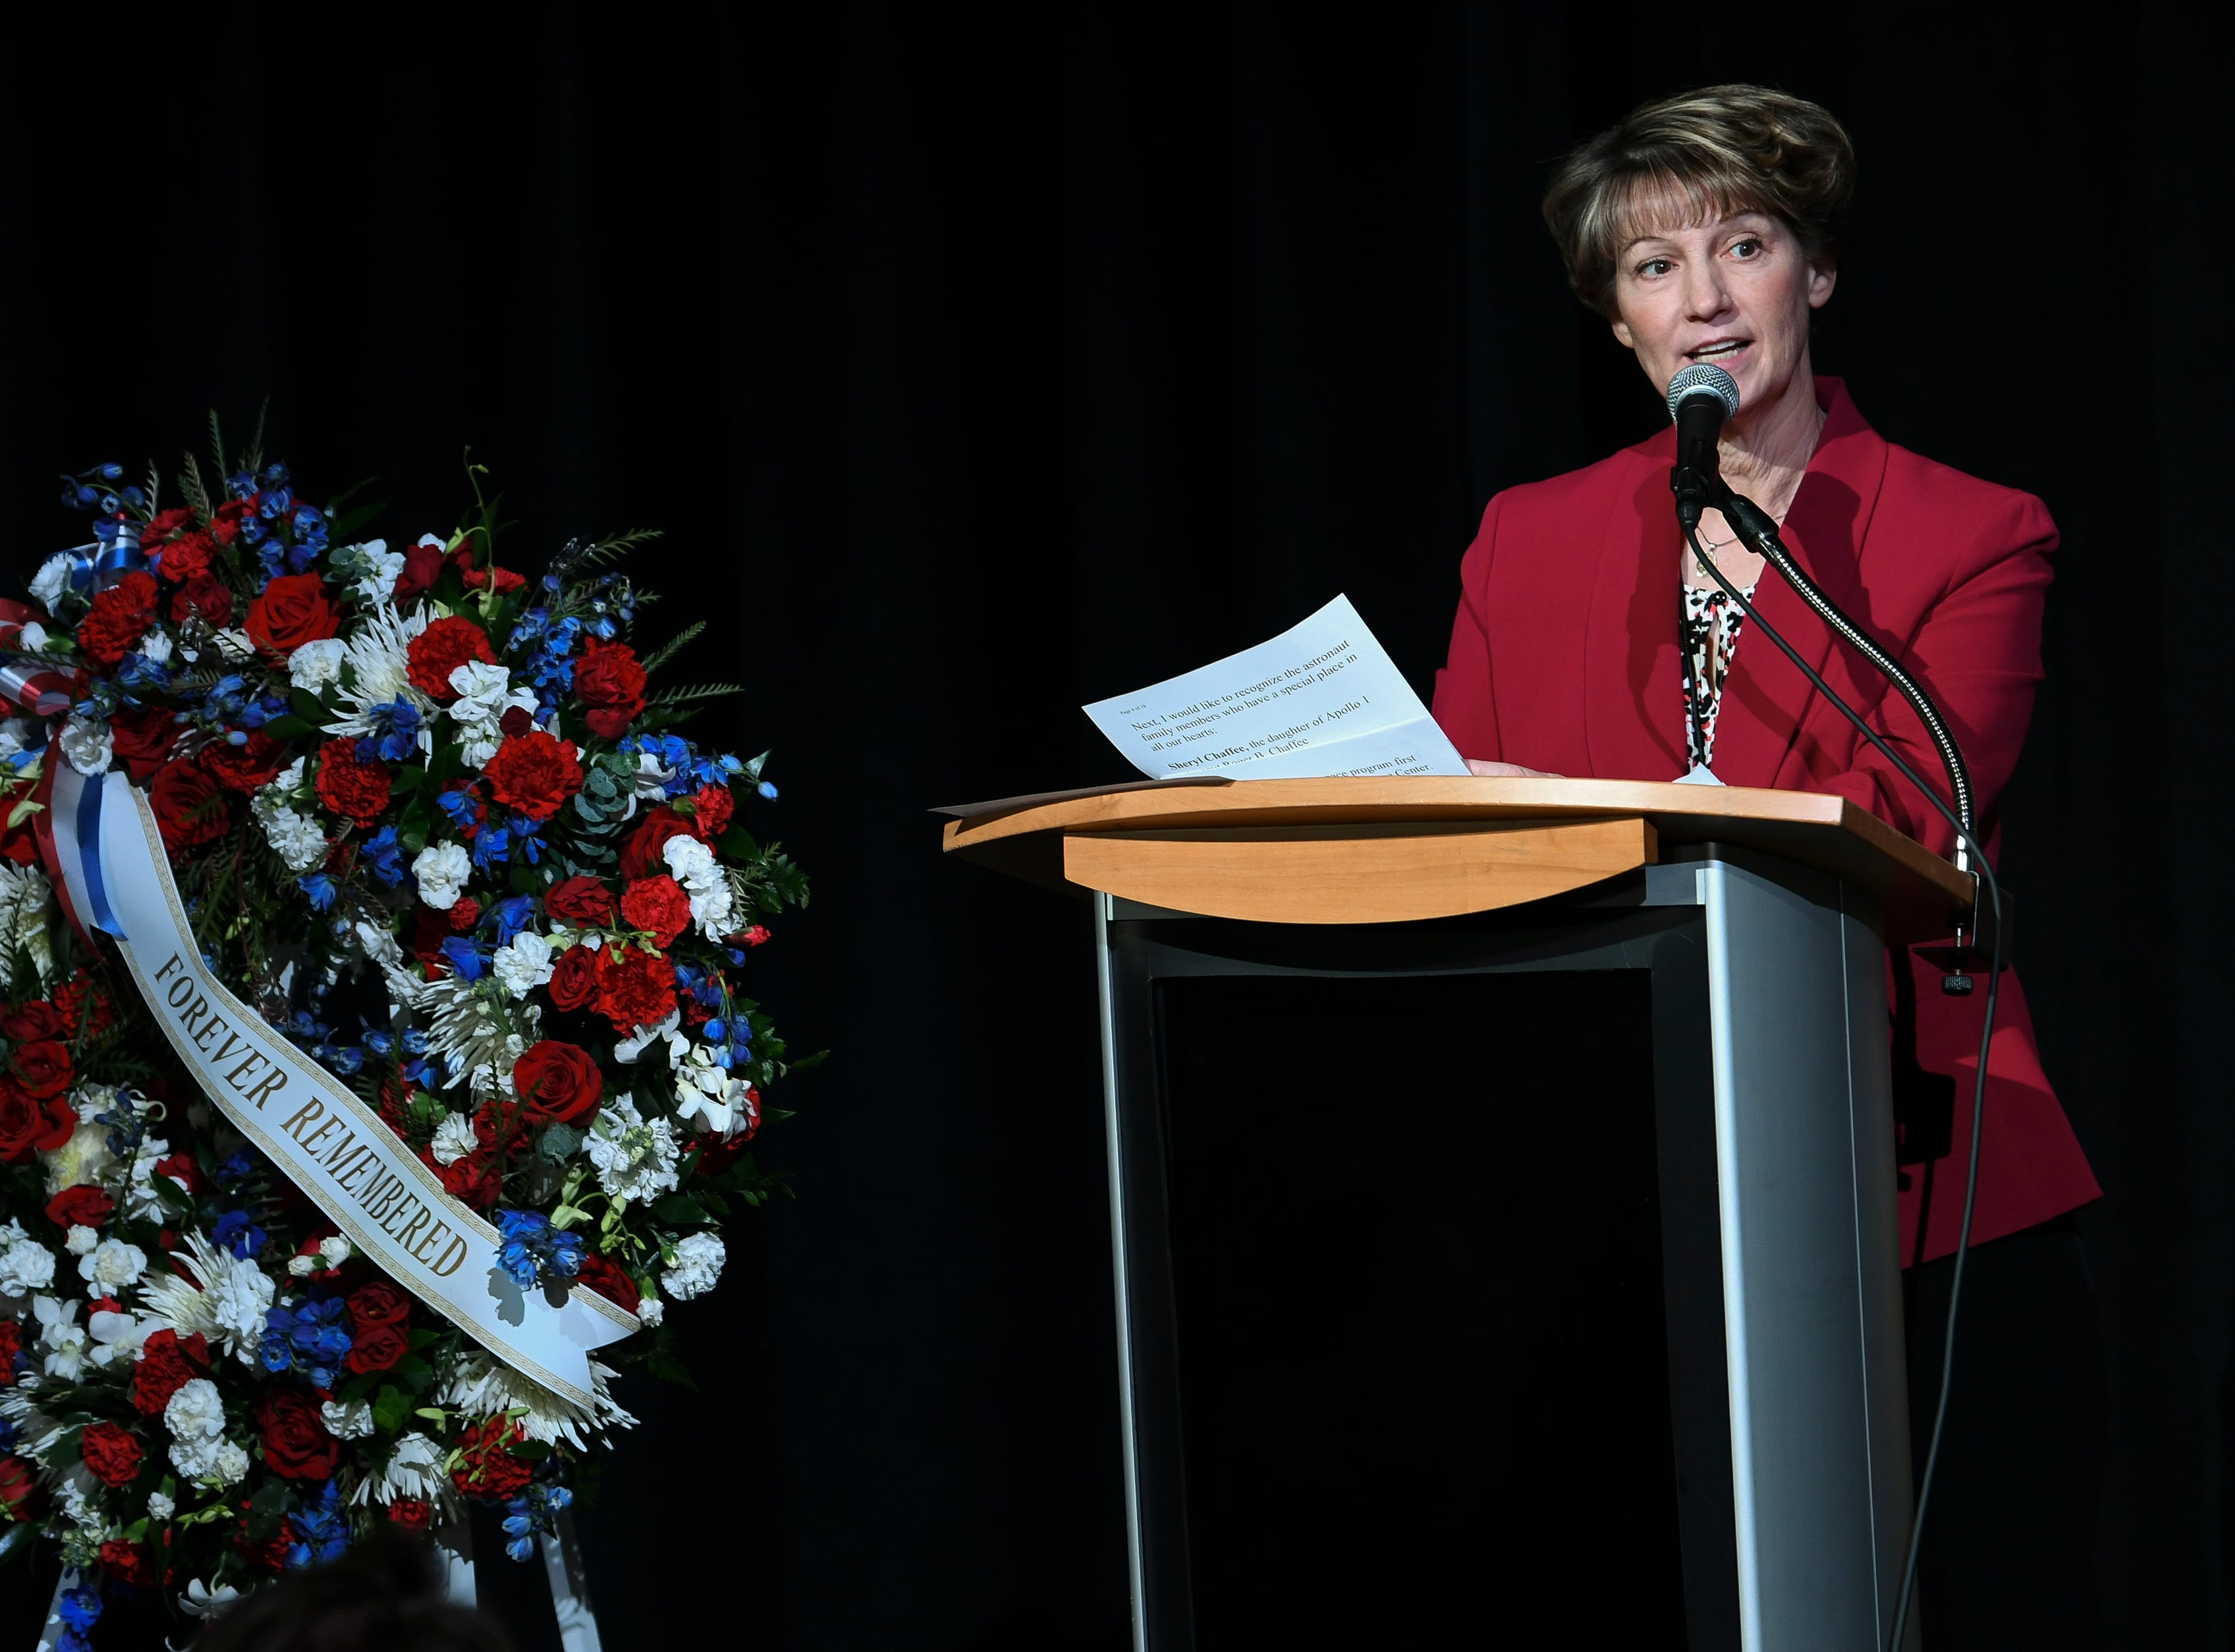 Elmira native Eileen Collins, Board Chairman of The Astronauts Memorial Foundation, addressed the crowd Thursday morning during Kennedy Space Center's Day of Remembrance.  The annual event honors those who perished in the space program.